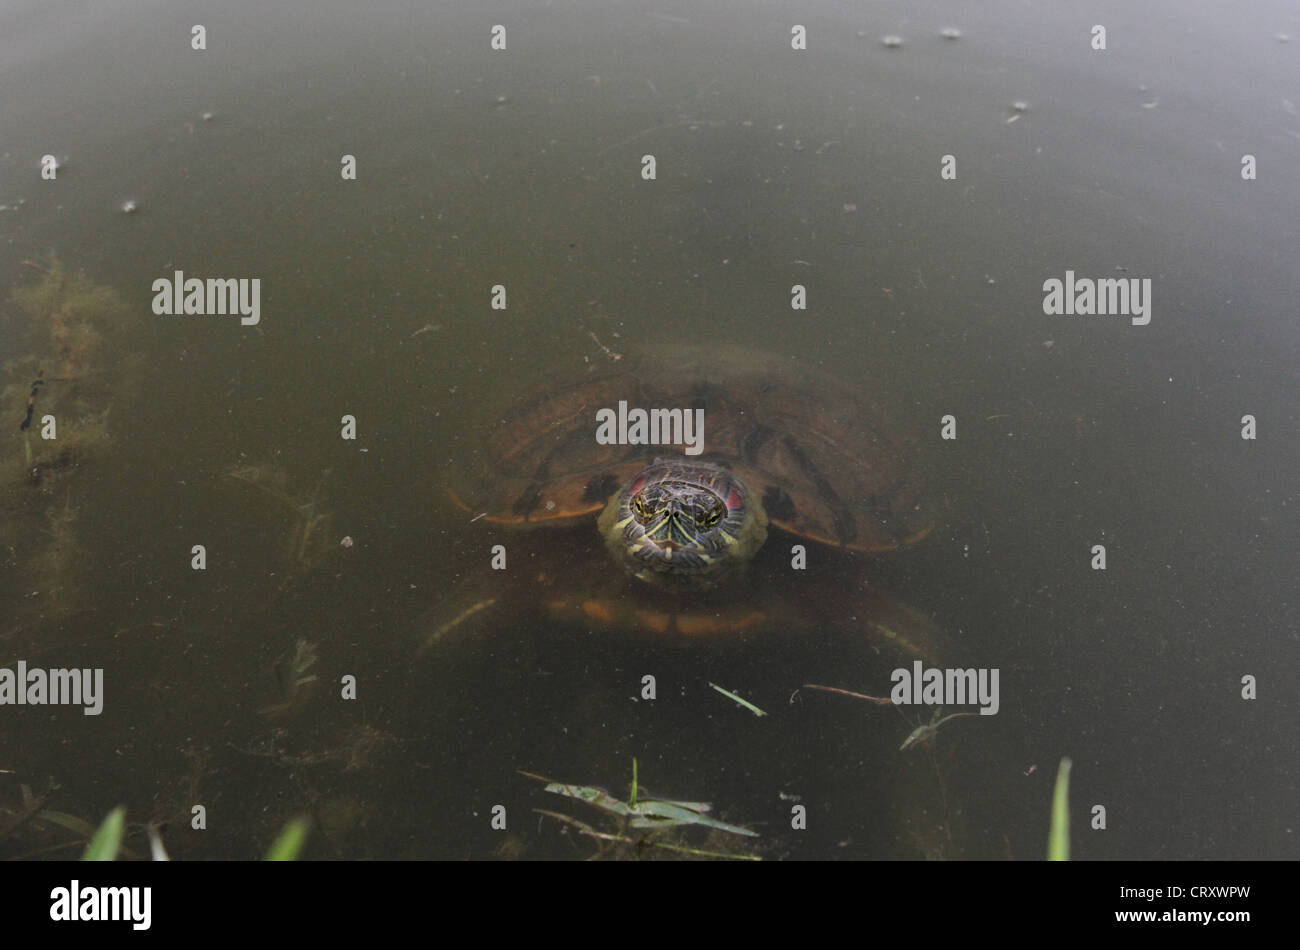 A snapping turtle in water. Stock Photo